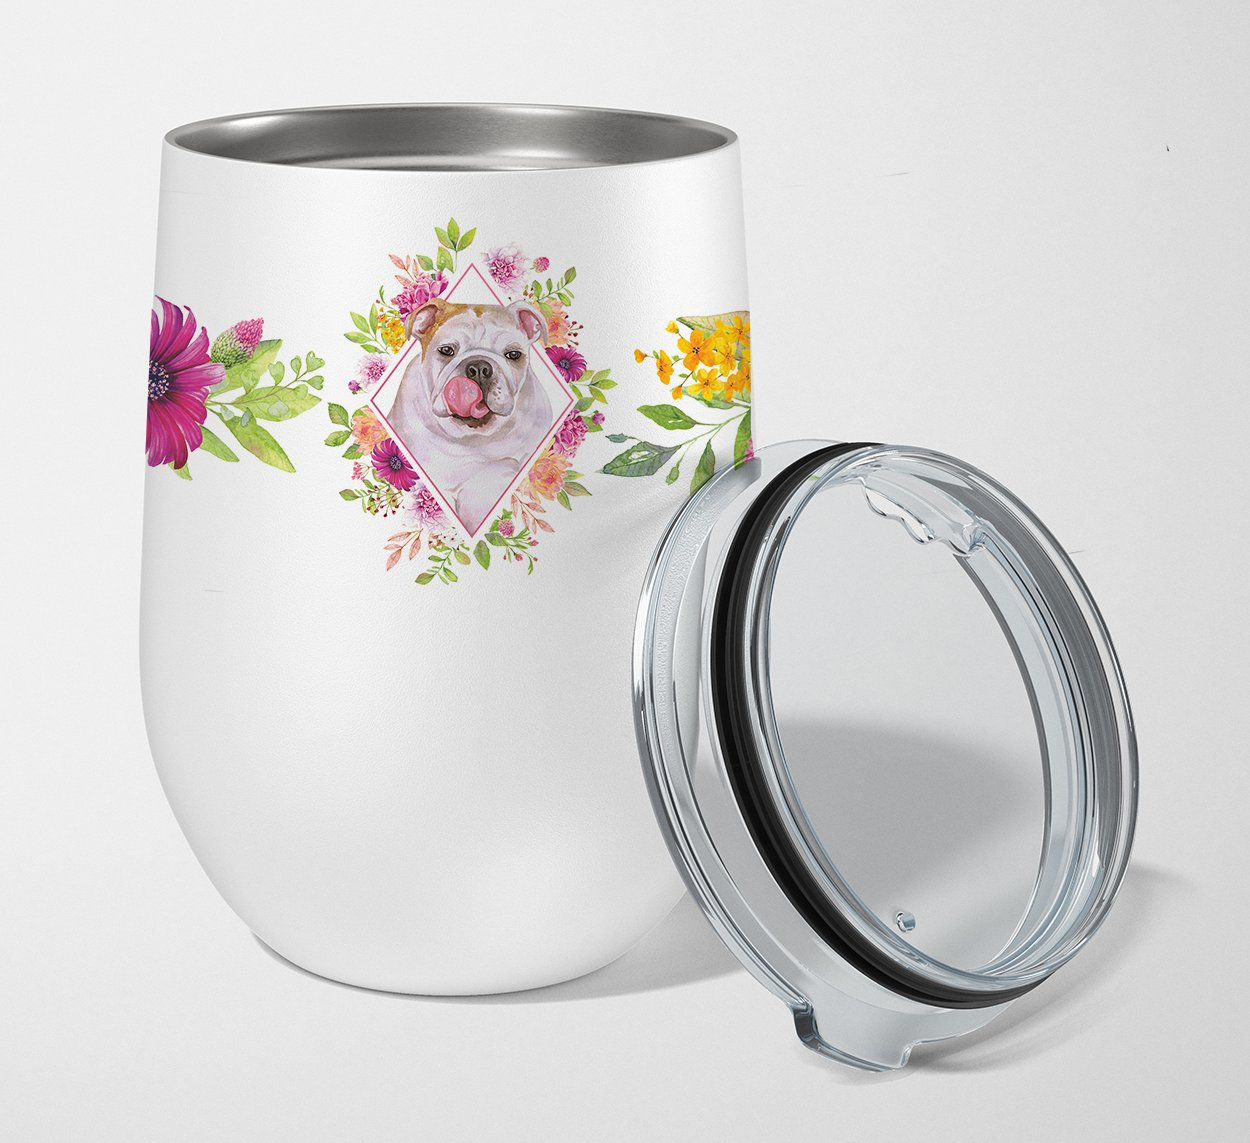 English Bulldog Pink Flowers Stainless Steel 12 oz Stemless Wine Glass CK4140TBL12 by Caroline's Treasures